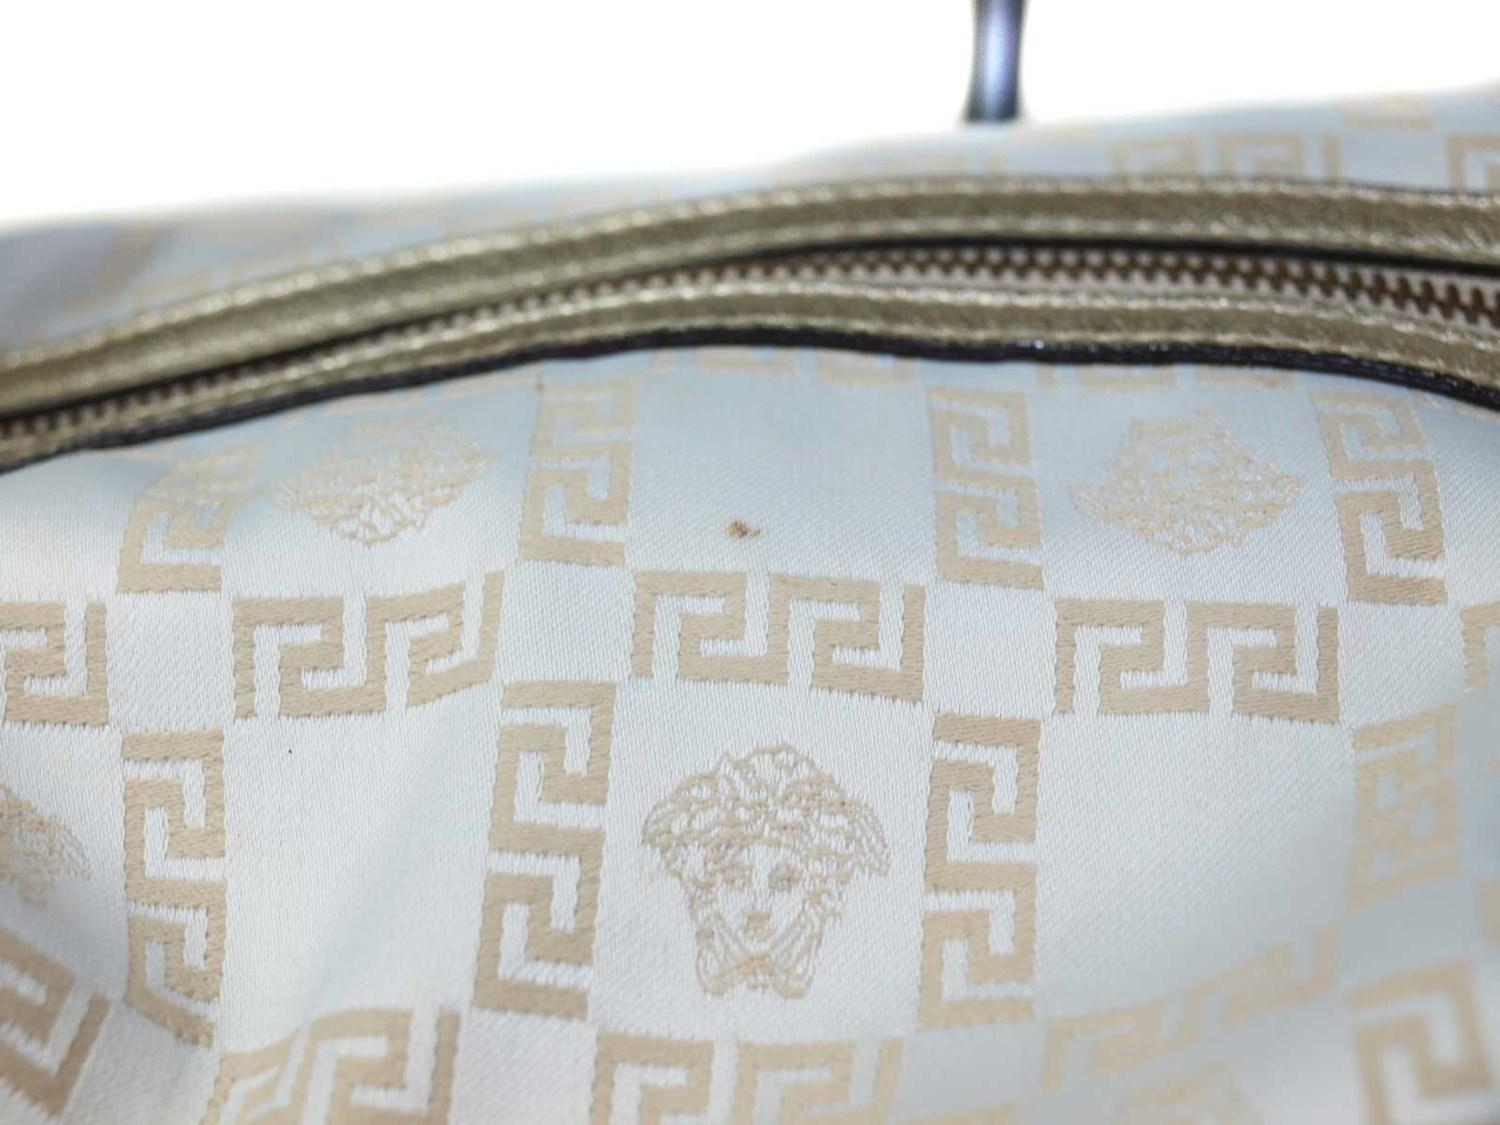 f44285fc641 Lyst - Versace Auth Ivory Canvas Gold Leather Shoulder Bag in Metallic